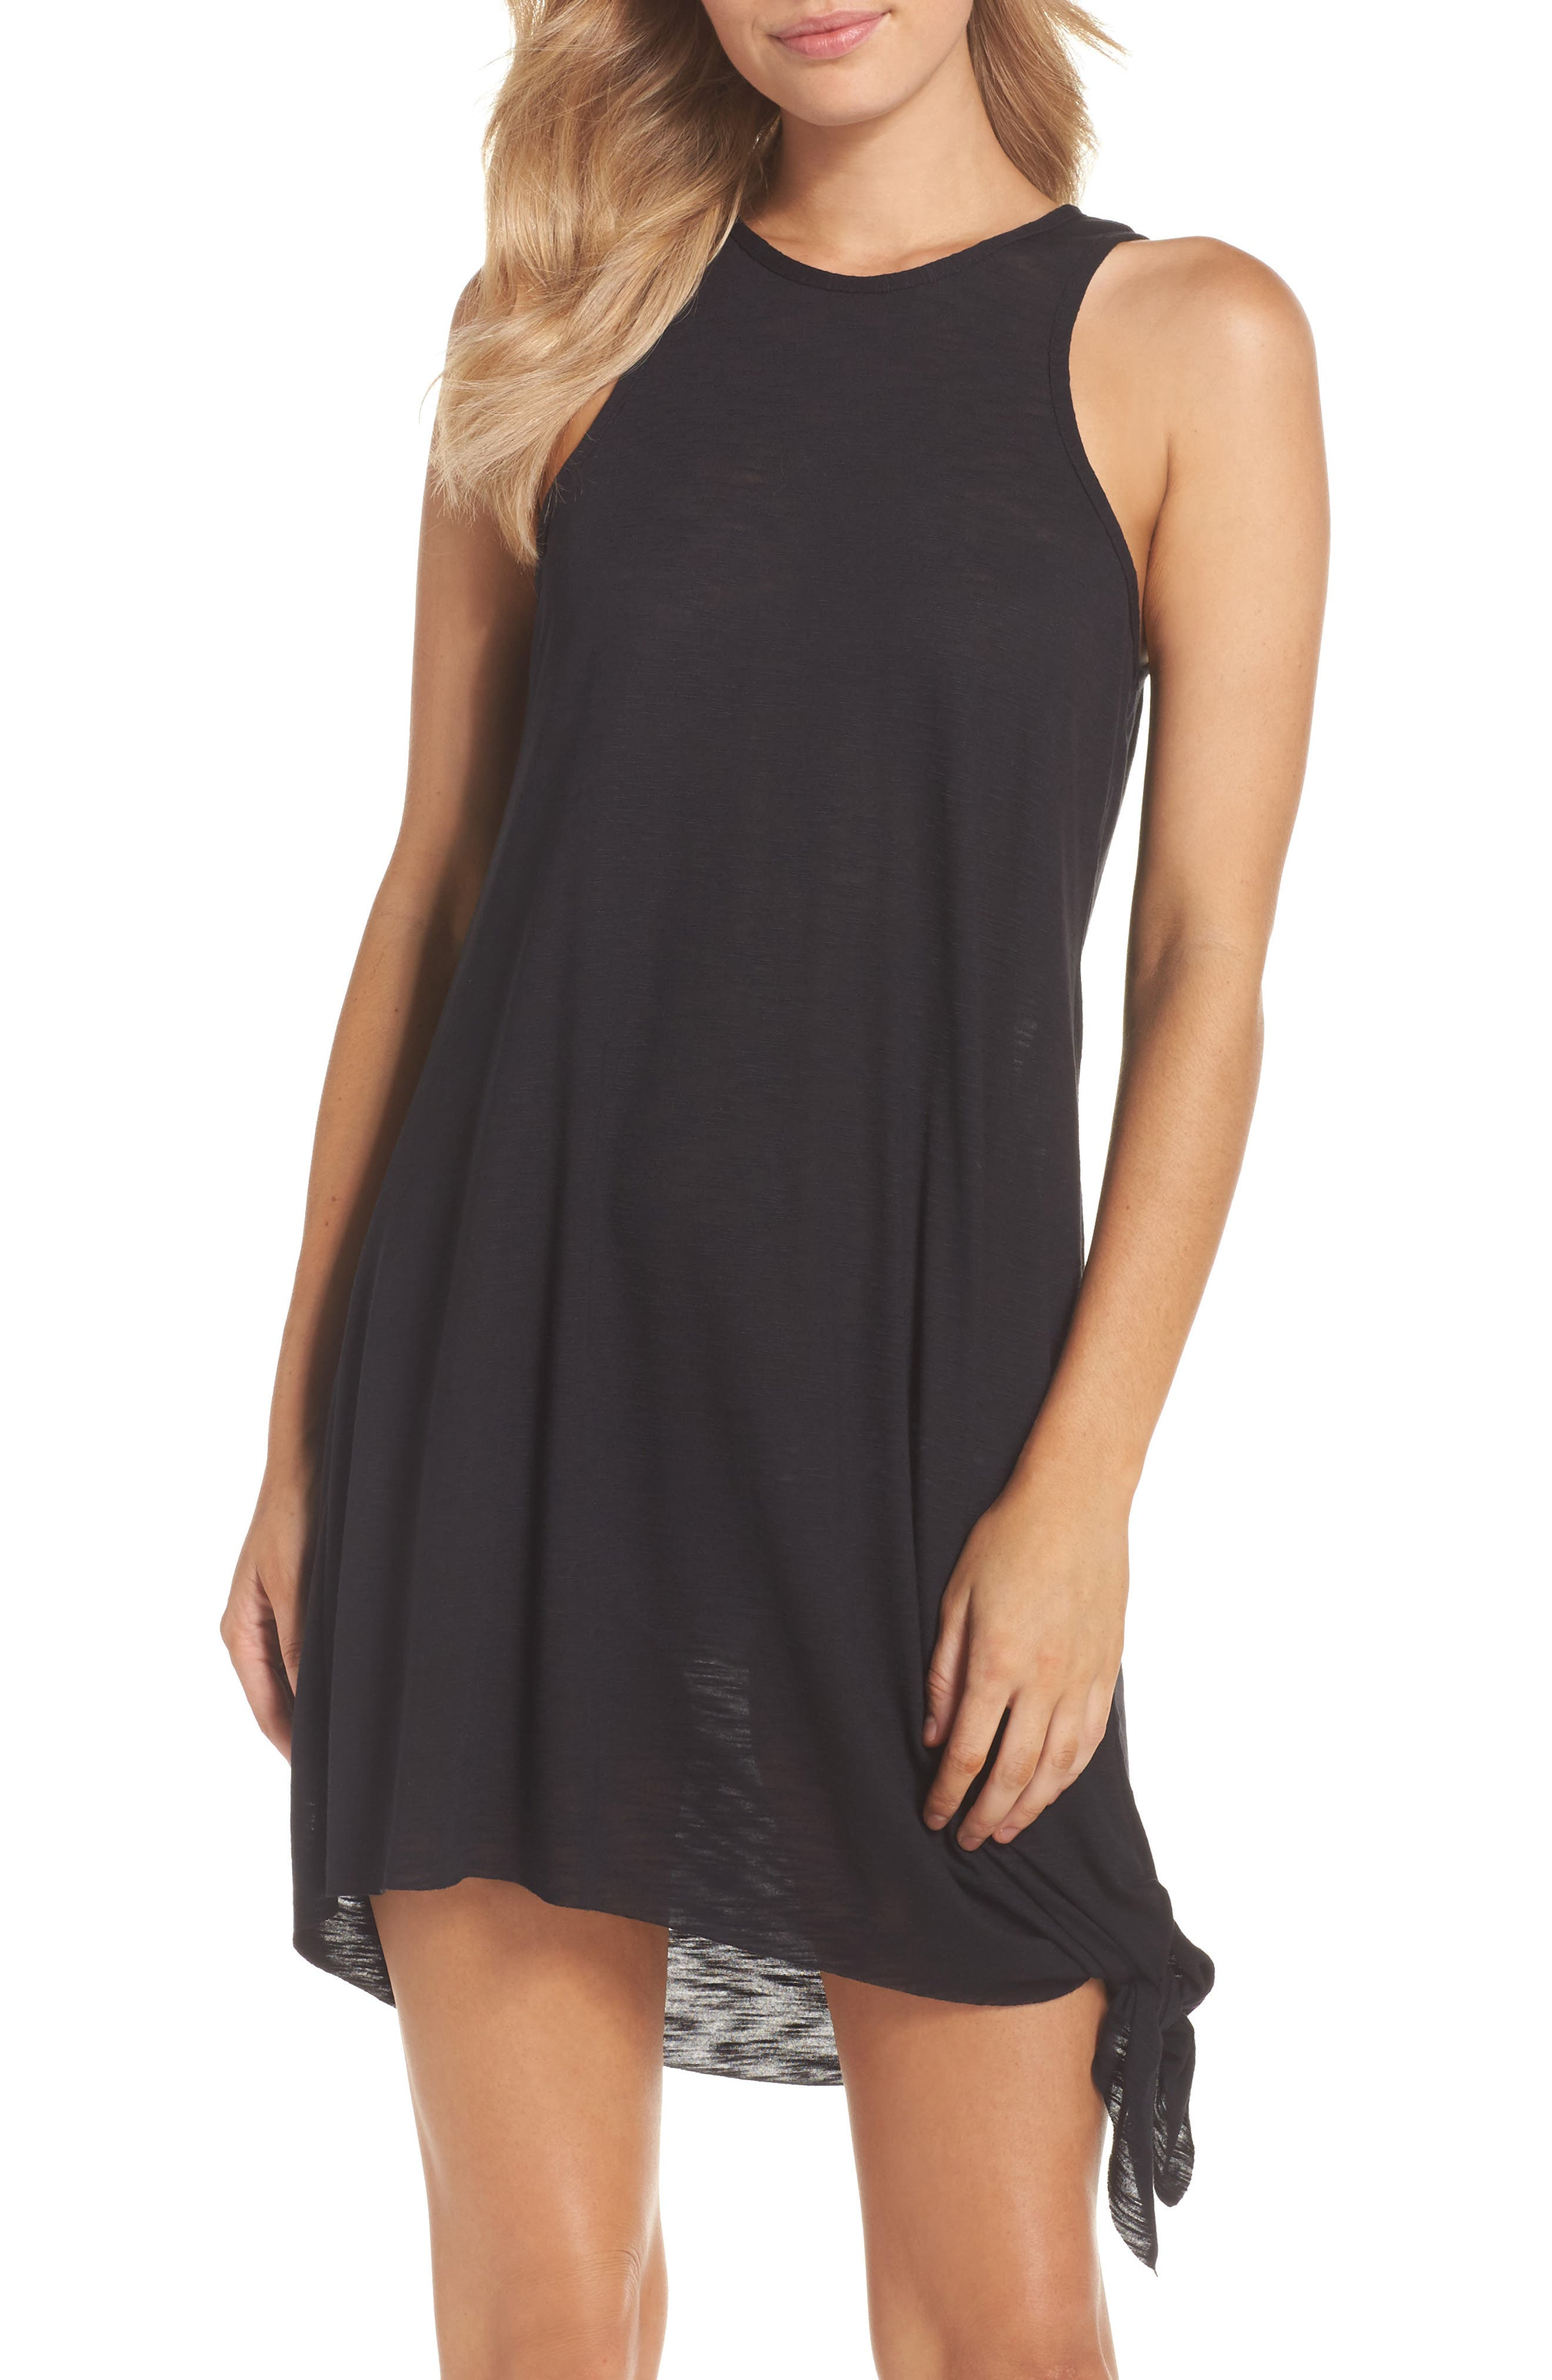 Becca Breezy Basics Cover-Up Dress, /XX-Large - Black